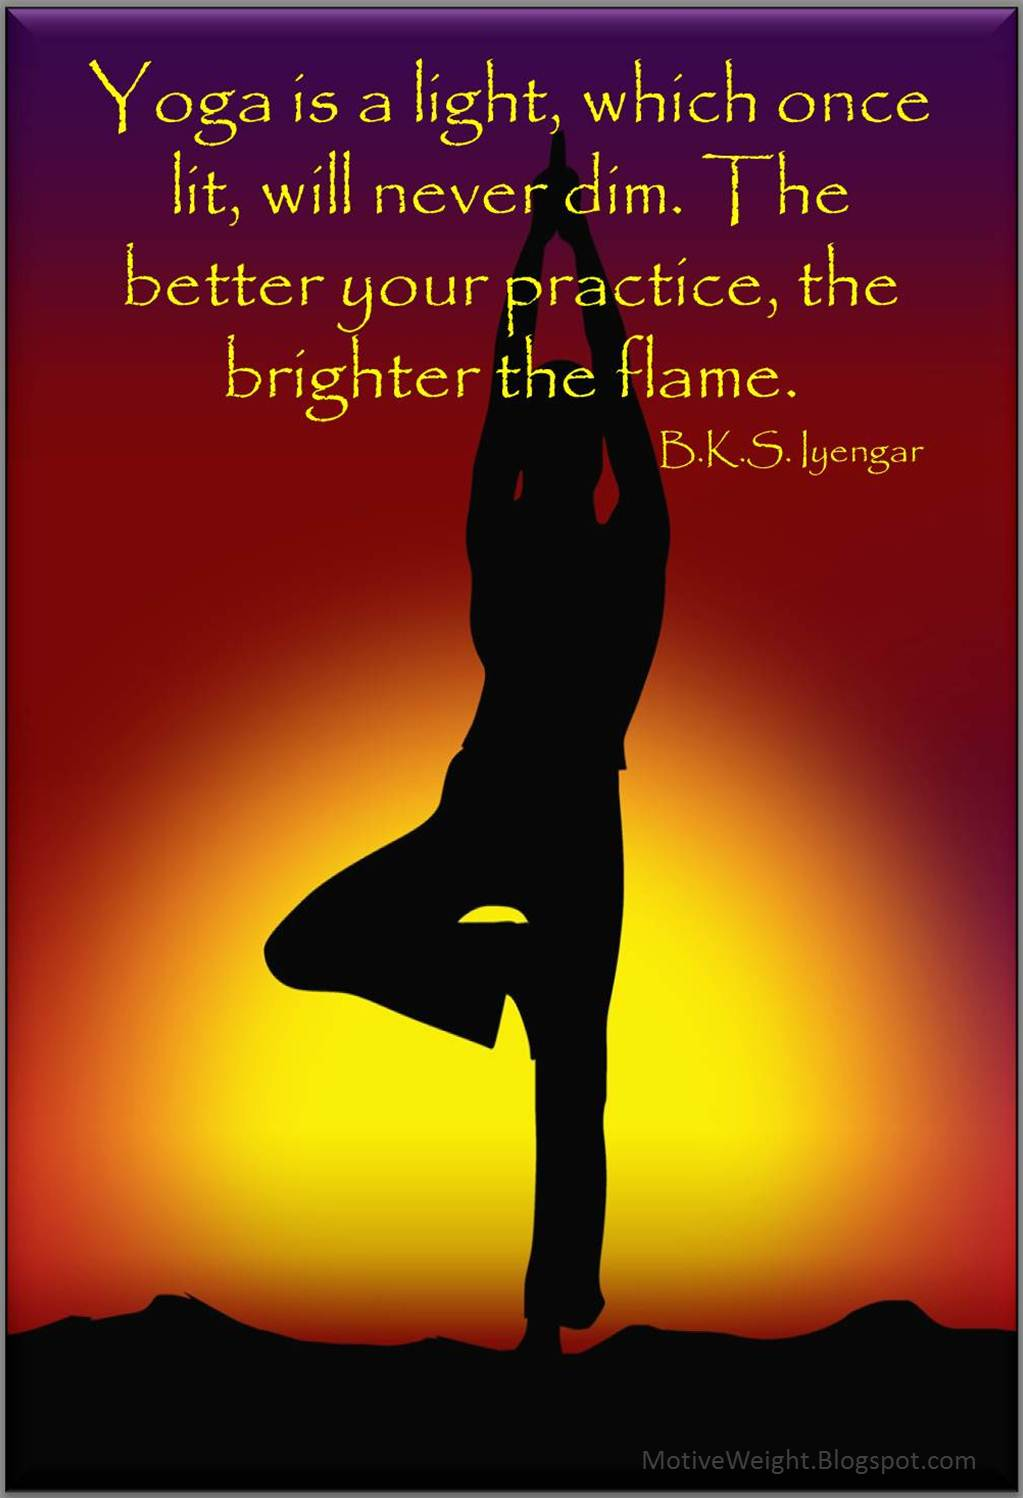 Yoga Quotes About Practice. QuotesGram